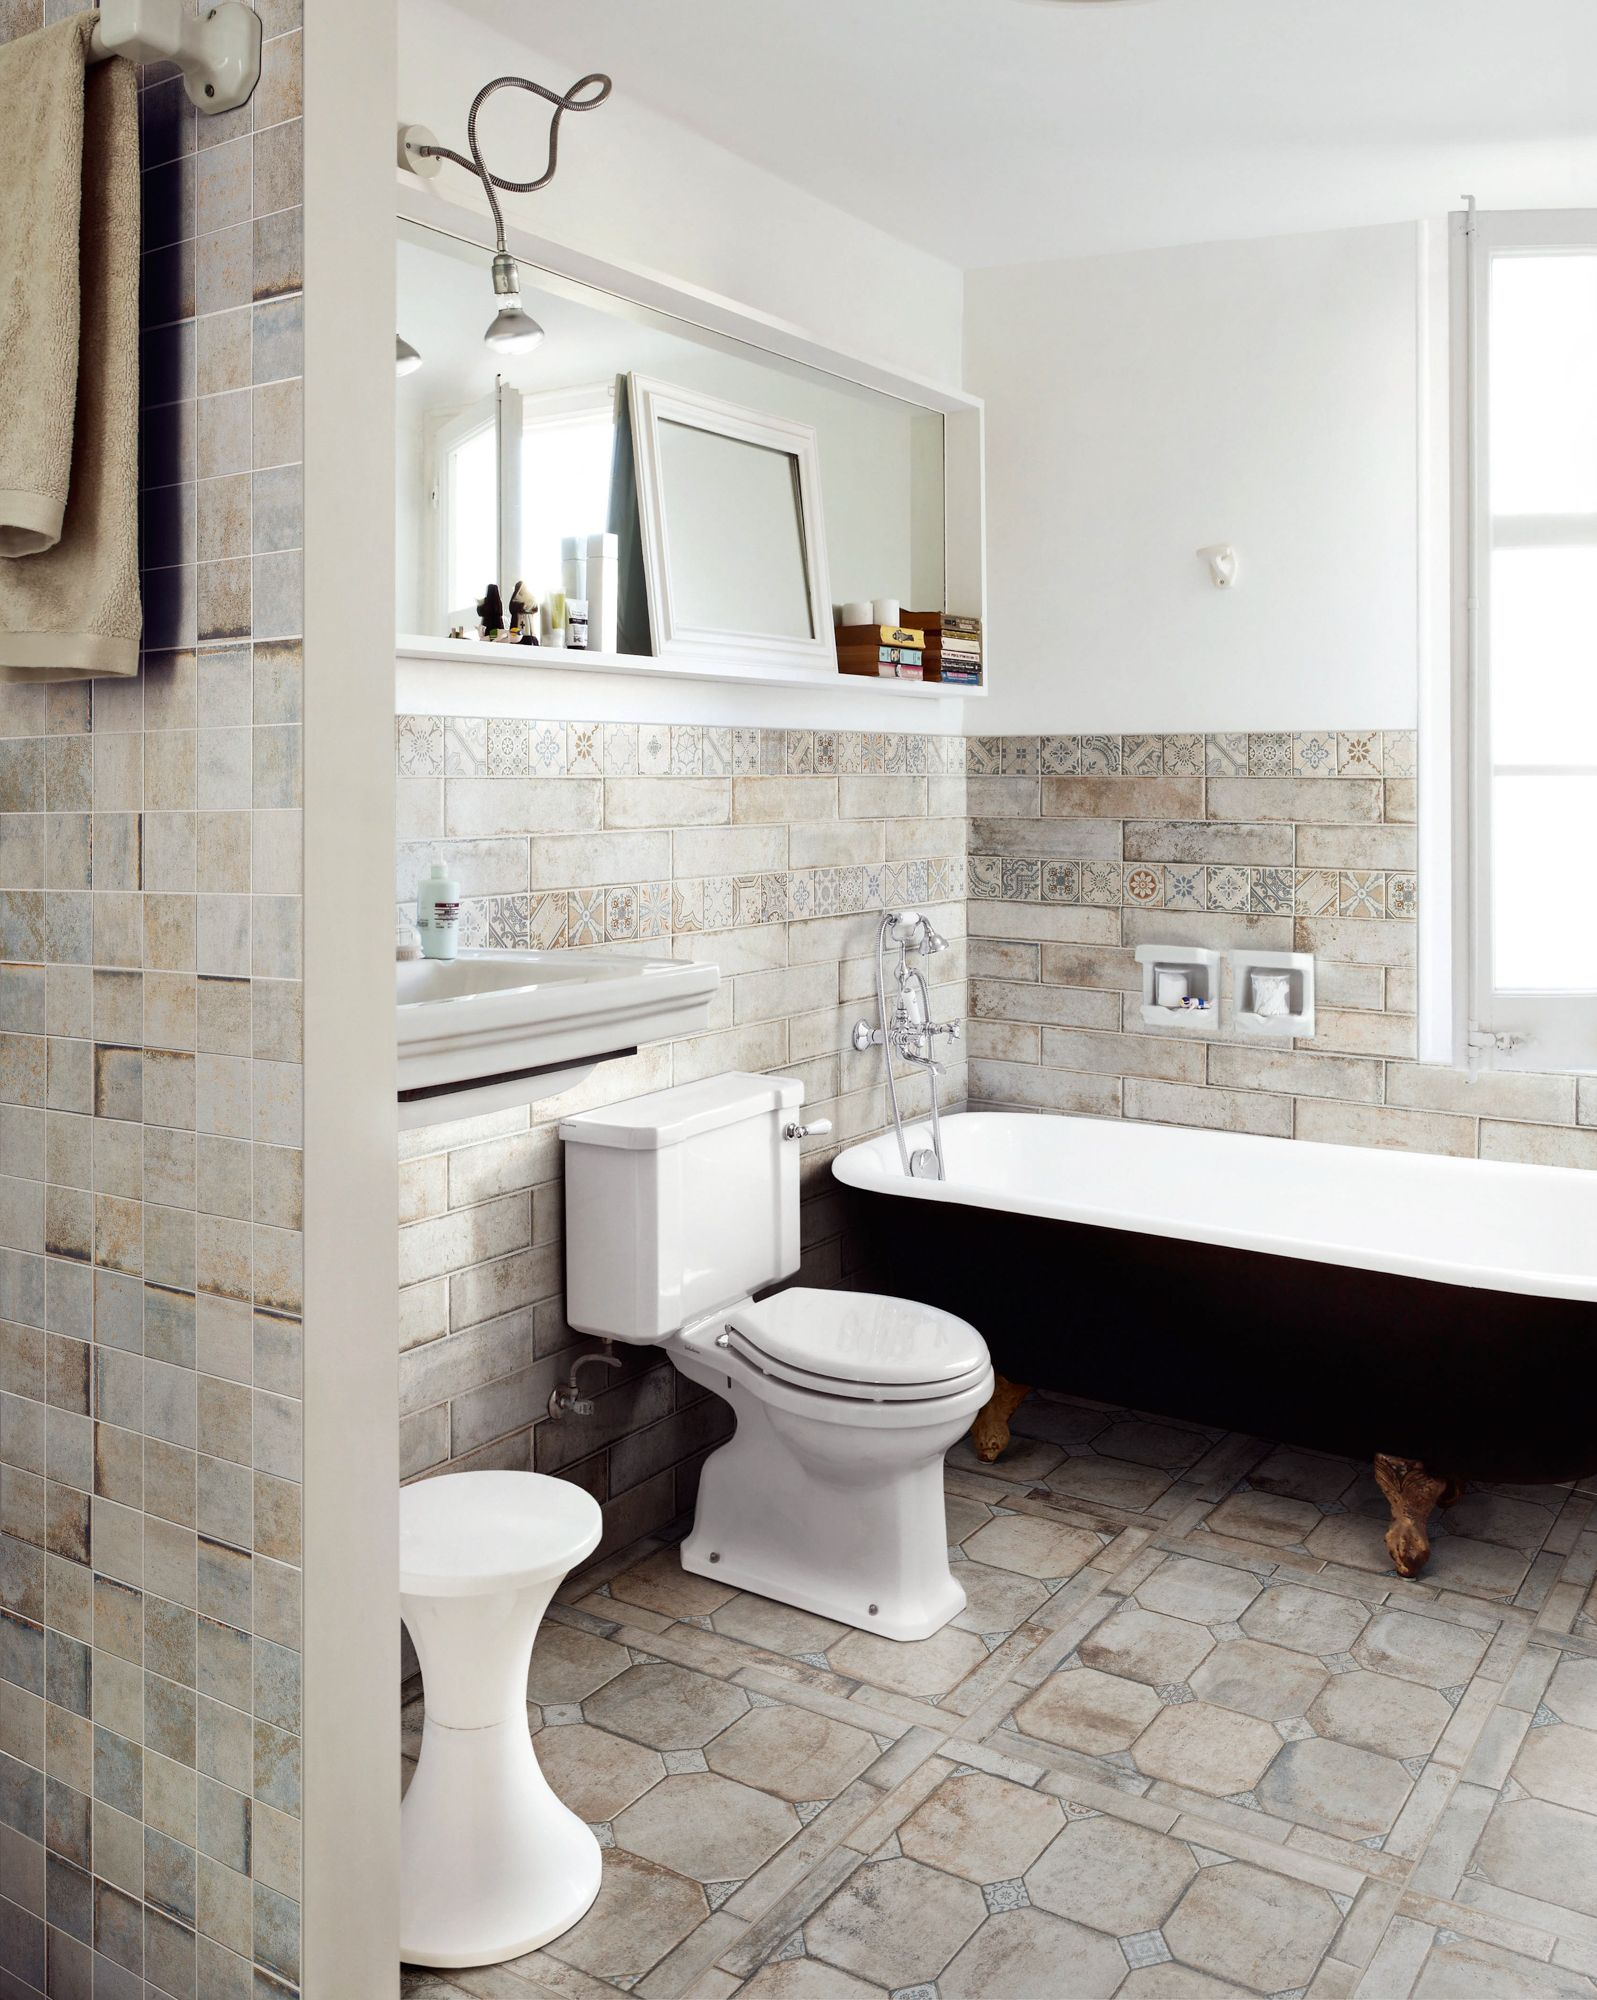 Sant\'Agostino Terre Nuove | TILE | Pinterest | Modern and Walls